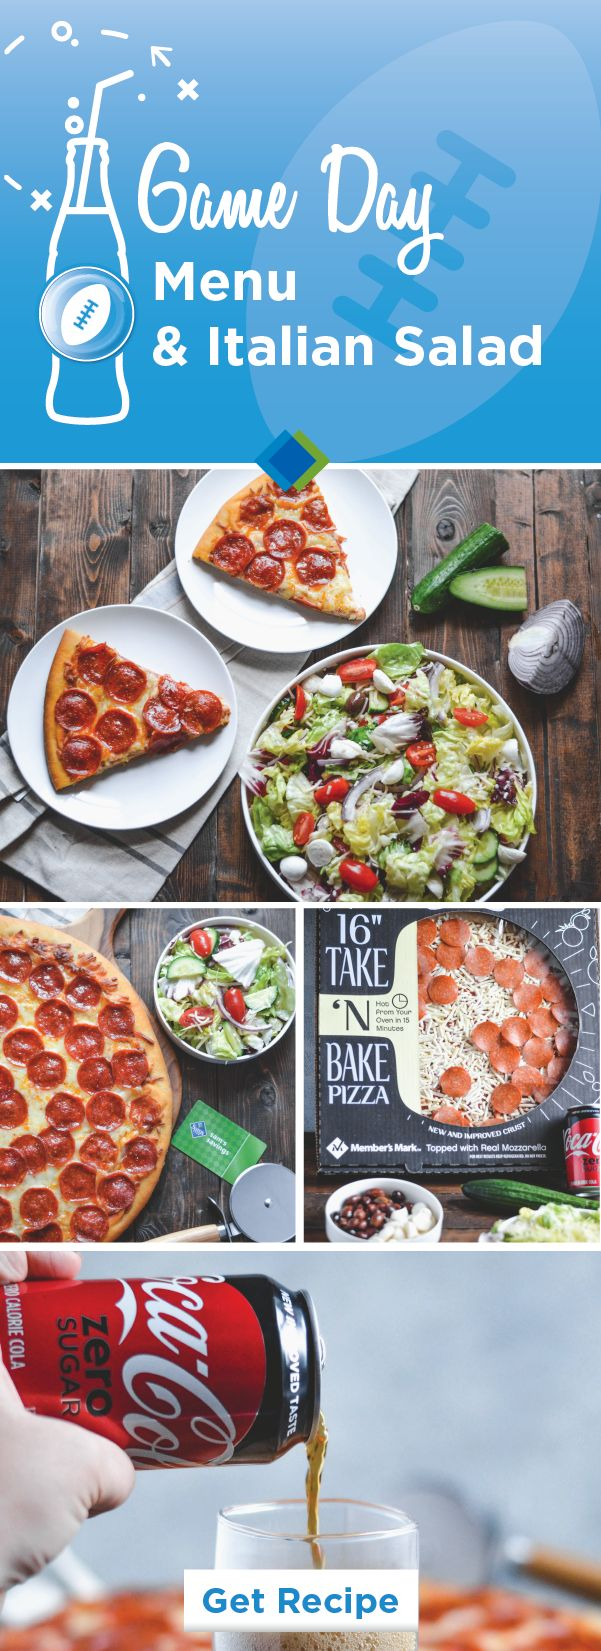 For a game-winning team, check out Member's Mark Take & Bake Pepperoni Pizza, Coca-Cola® Zero Sugar, and this Italian Salad recipe! From the easy party prep to the crowd-pleasing flavors, everything about this game day menu will have you cheering—especially since you can find all the tasty entertaining essentials you'll need at Sam's Club!